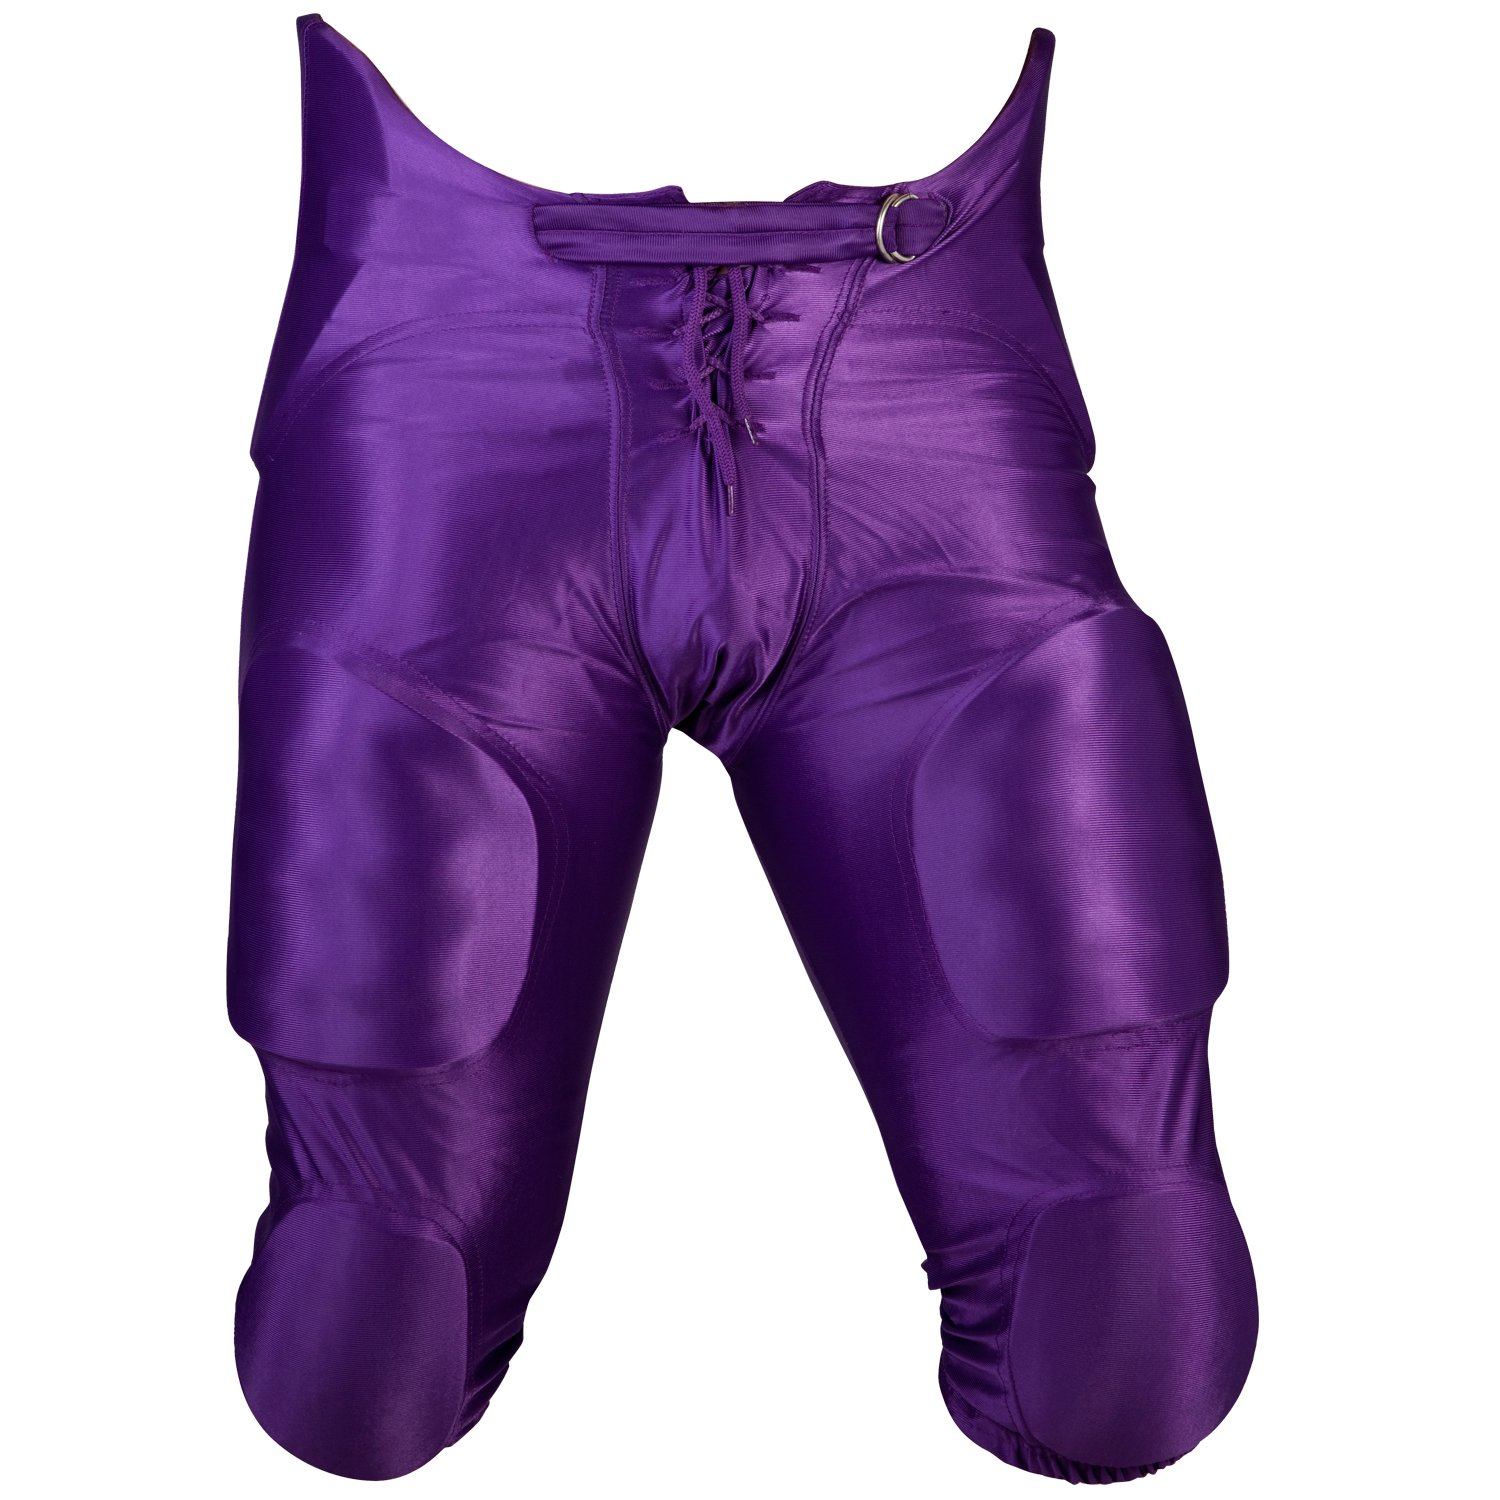 (X-Large, Purple) - Cramer Football Game Pants, 7 Pad, Adult and Youth Size, Assorted Colours B00LPAC1GA